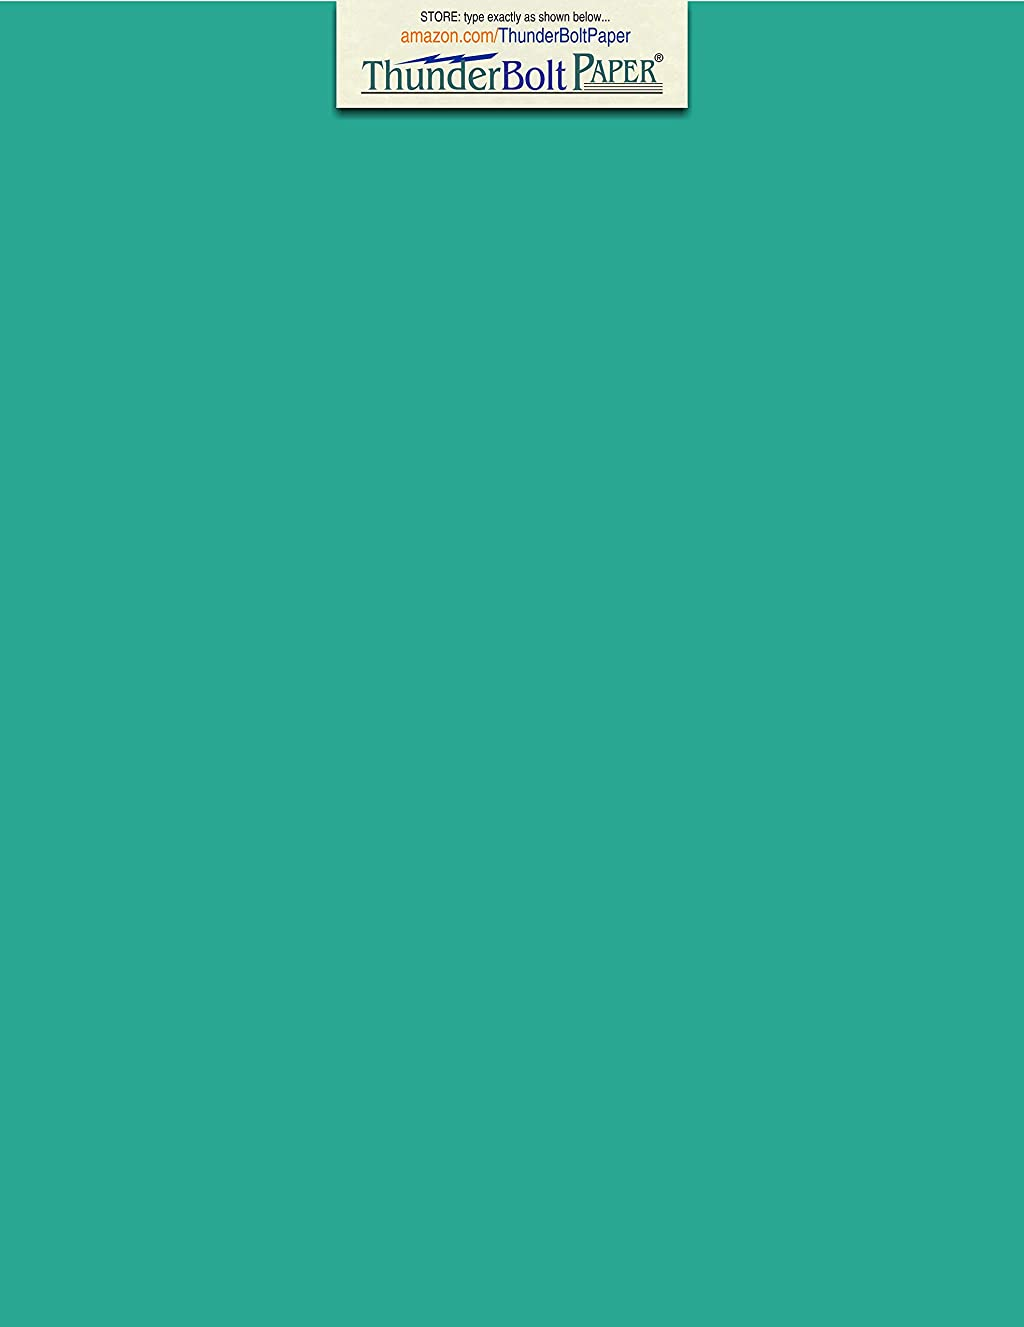 50 Bright Teal 65lb Cover|Card Paper - 8.5 X 11 Inches Standard Letter|Flyer Size - 65 lb/Pound Light Weight Cardstock - Quality Printable Smooth Surface for Bright Colorful Results